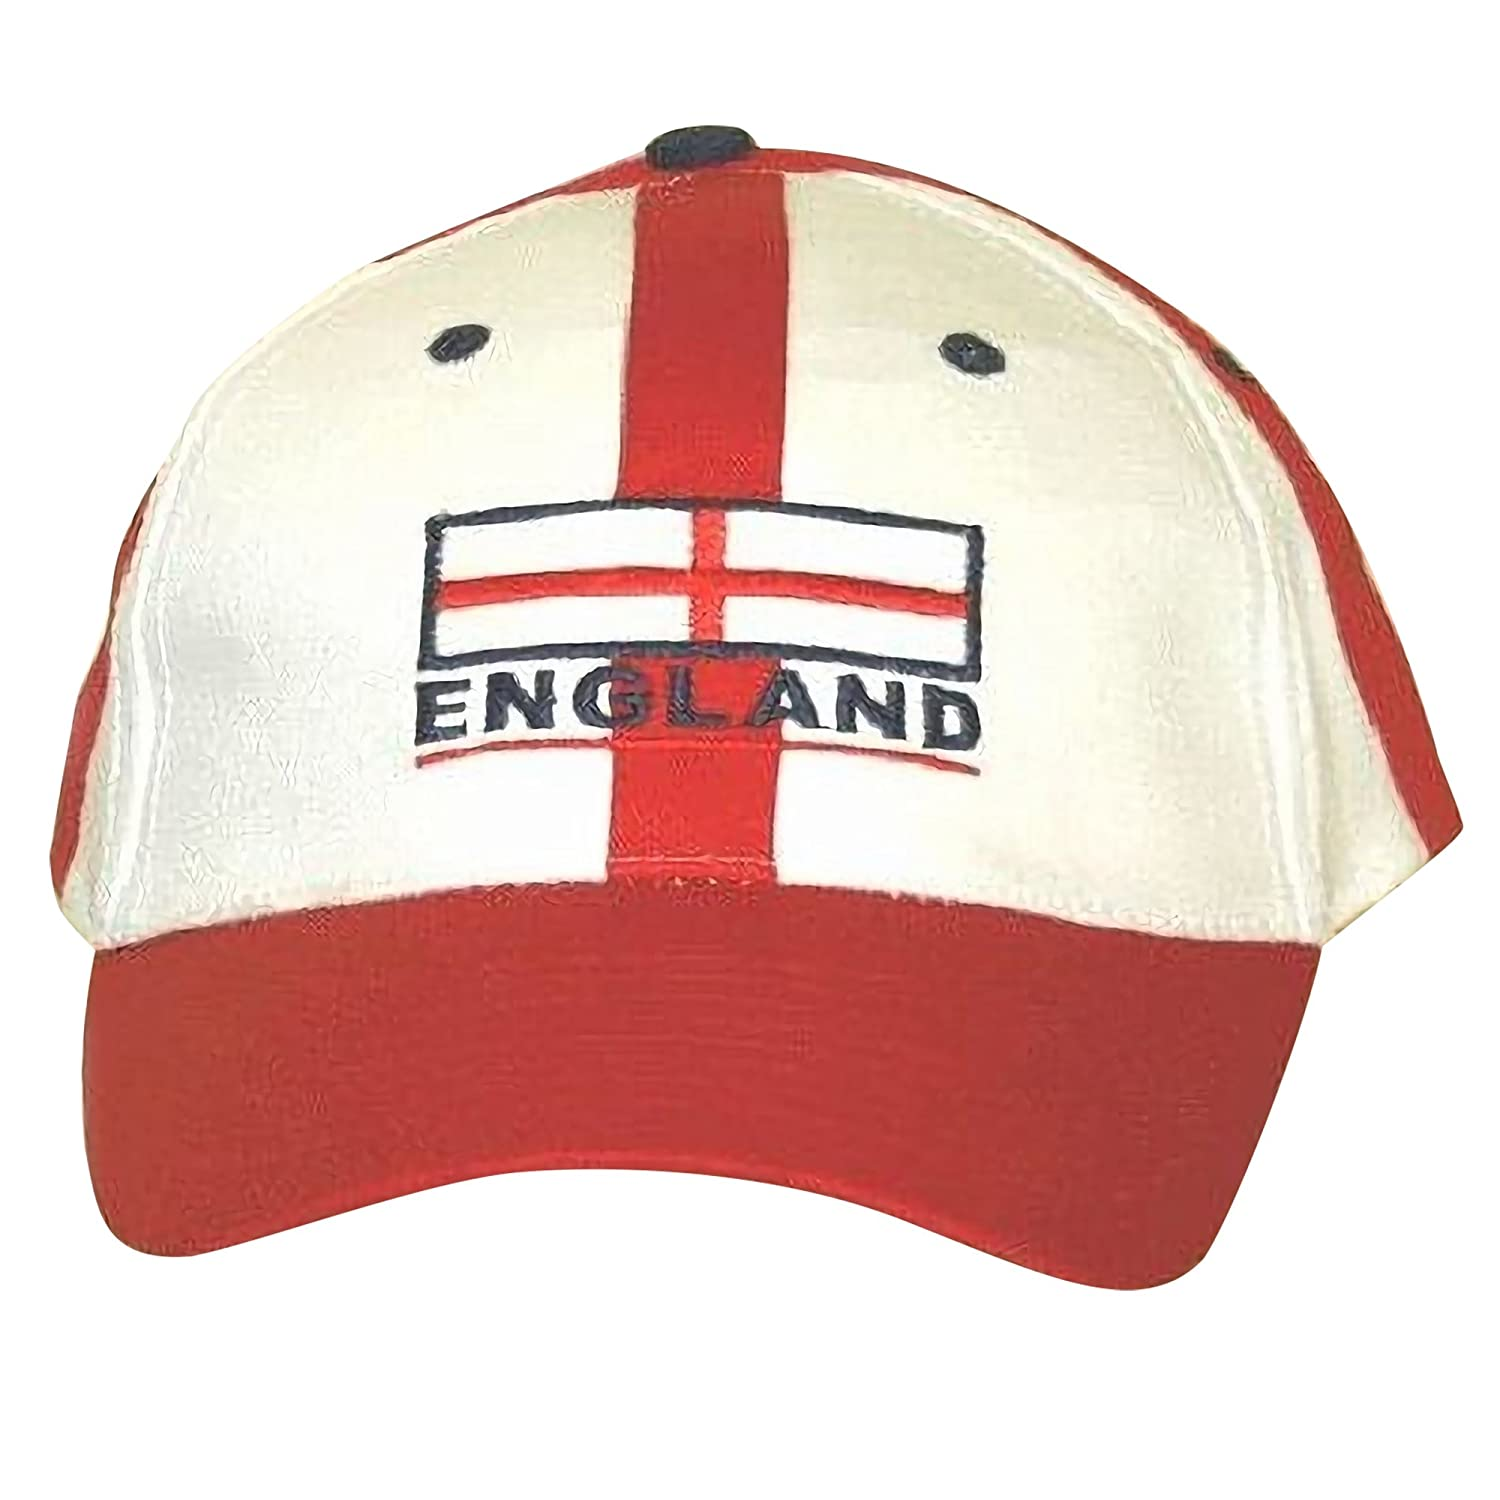 England Baseball Cap Red White With Adjustable Strap UTC325_1